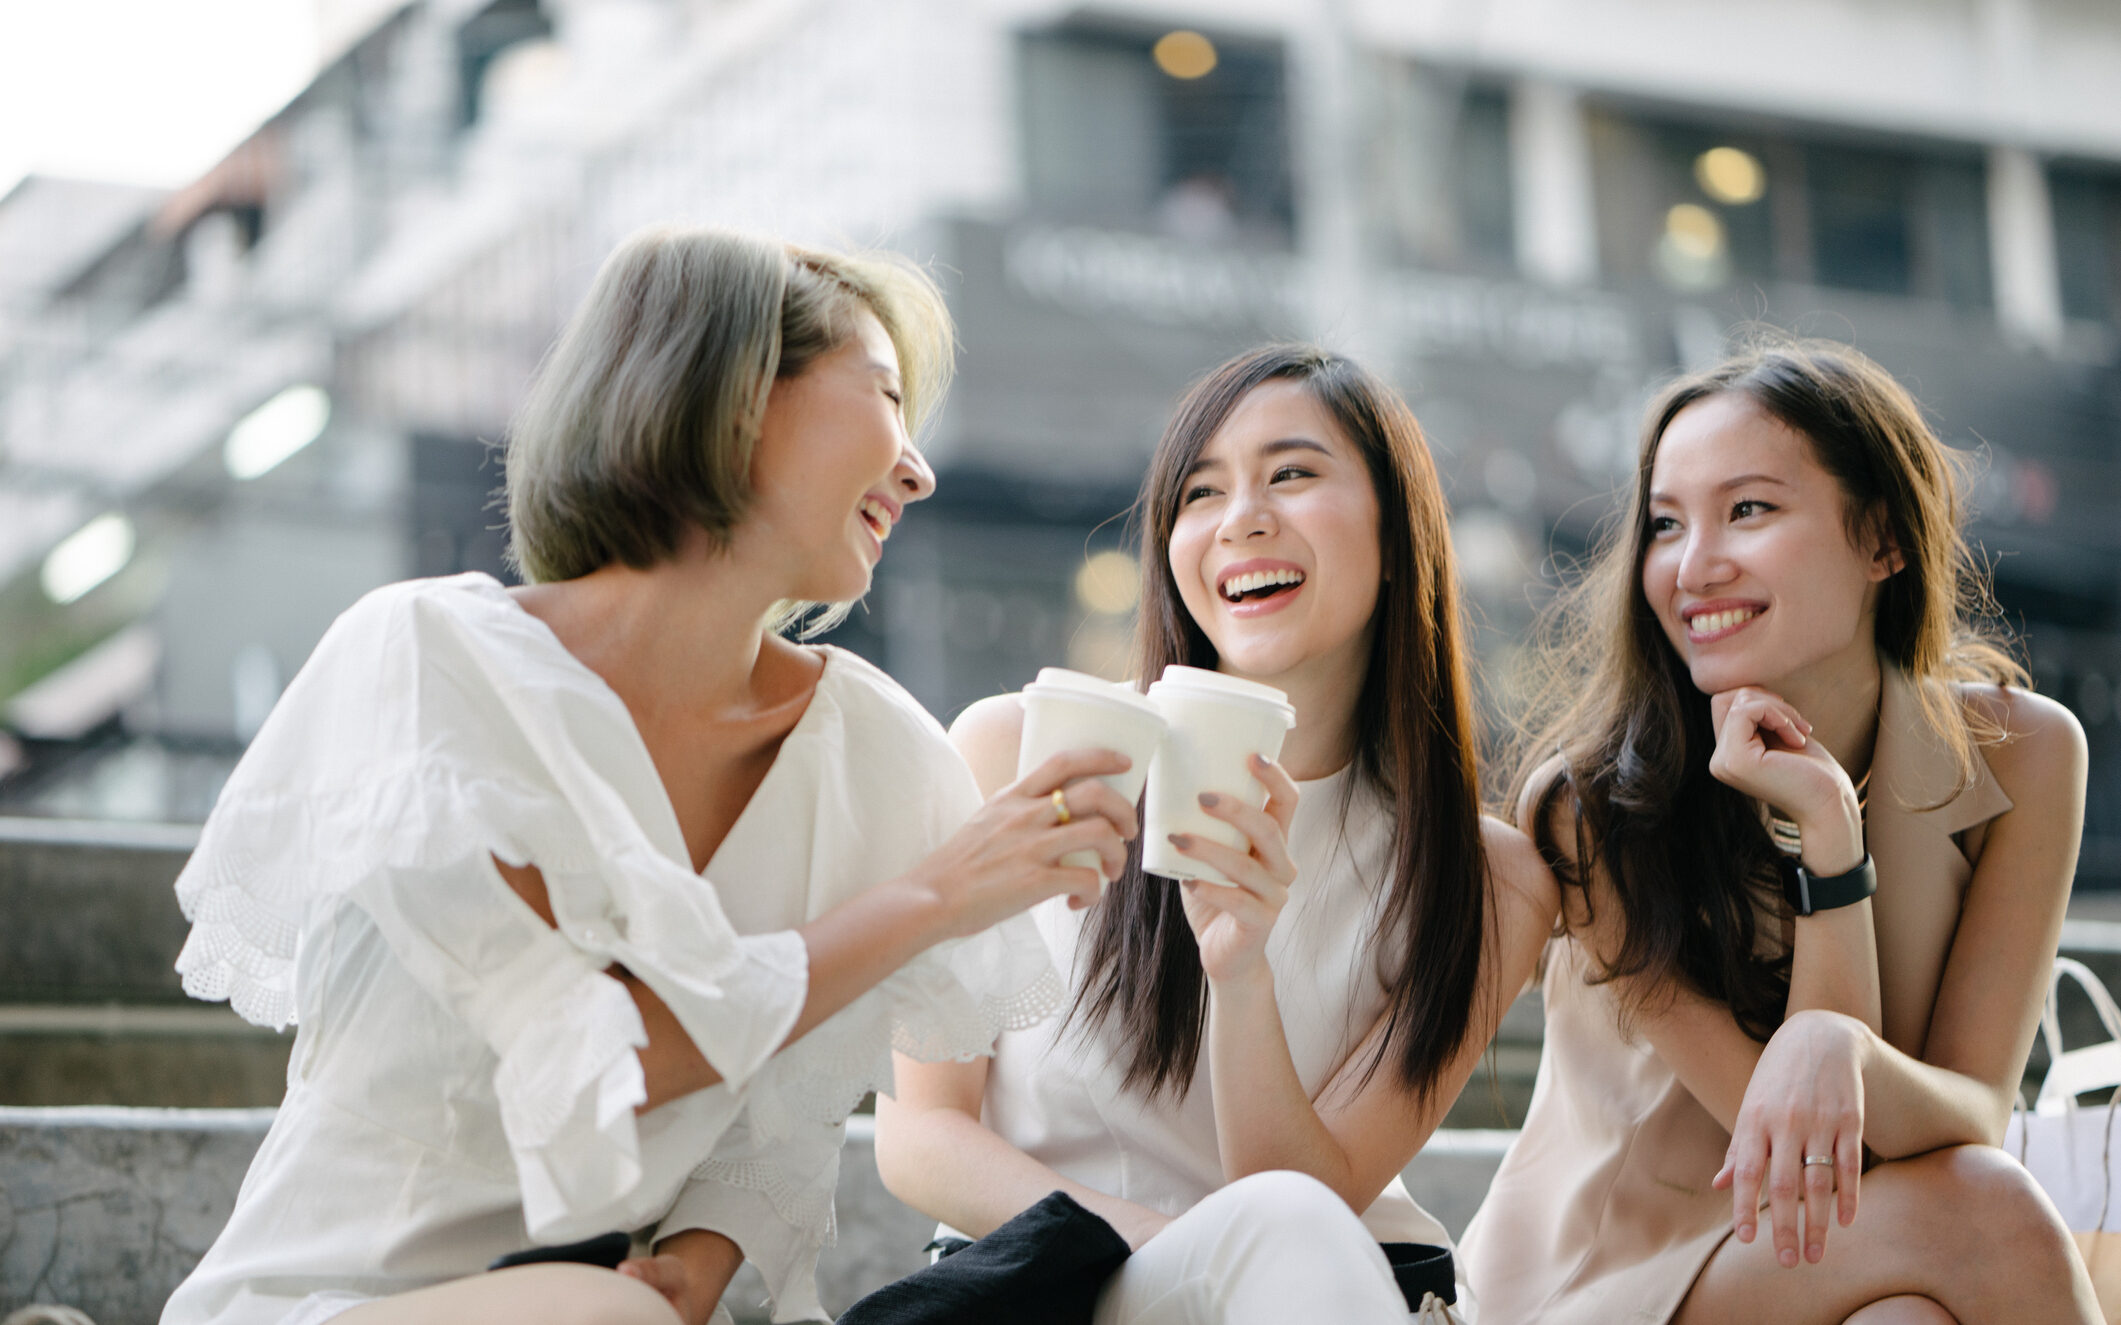 Women friends out for shopping in city streets